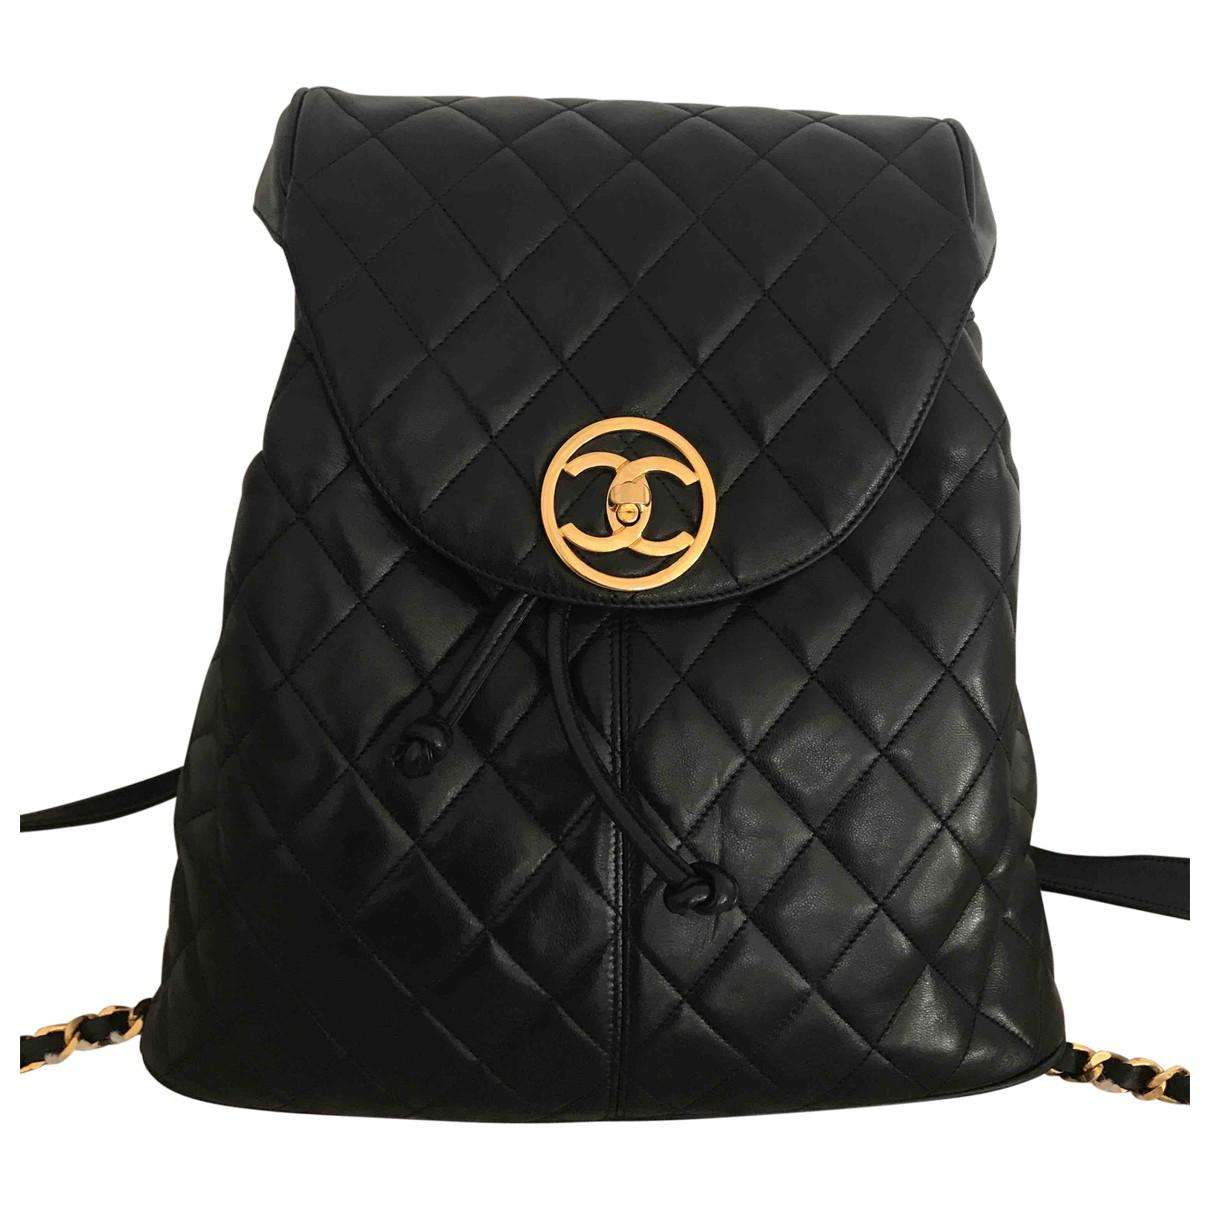 Lyst - Chanel Leather Backpack in Black 071280136246e